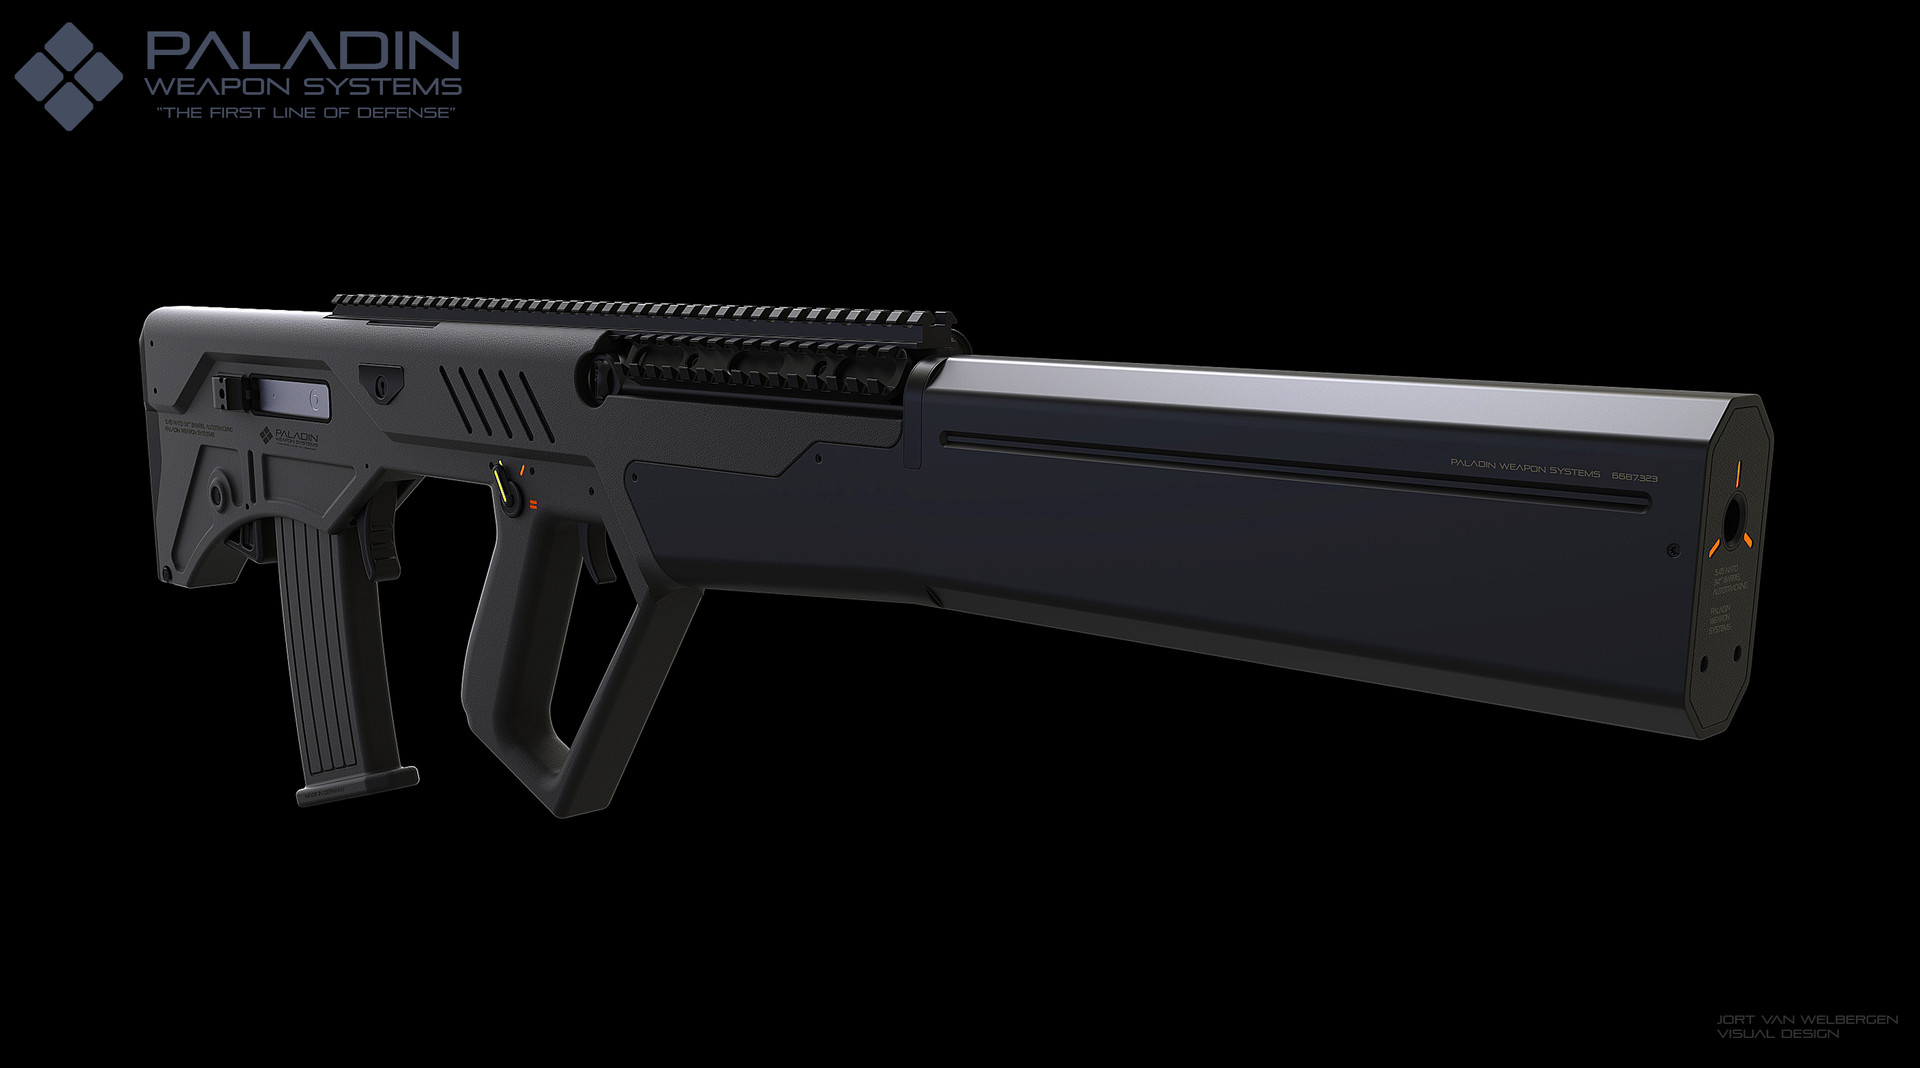 Jort van welbergen pws raptor assault rifle